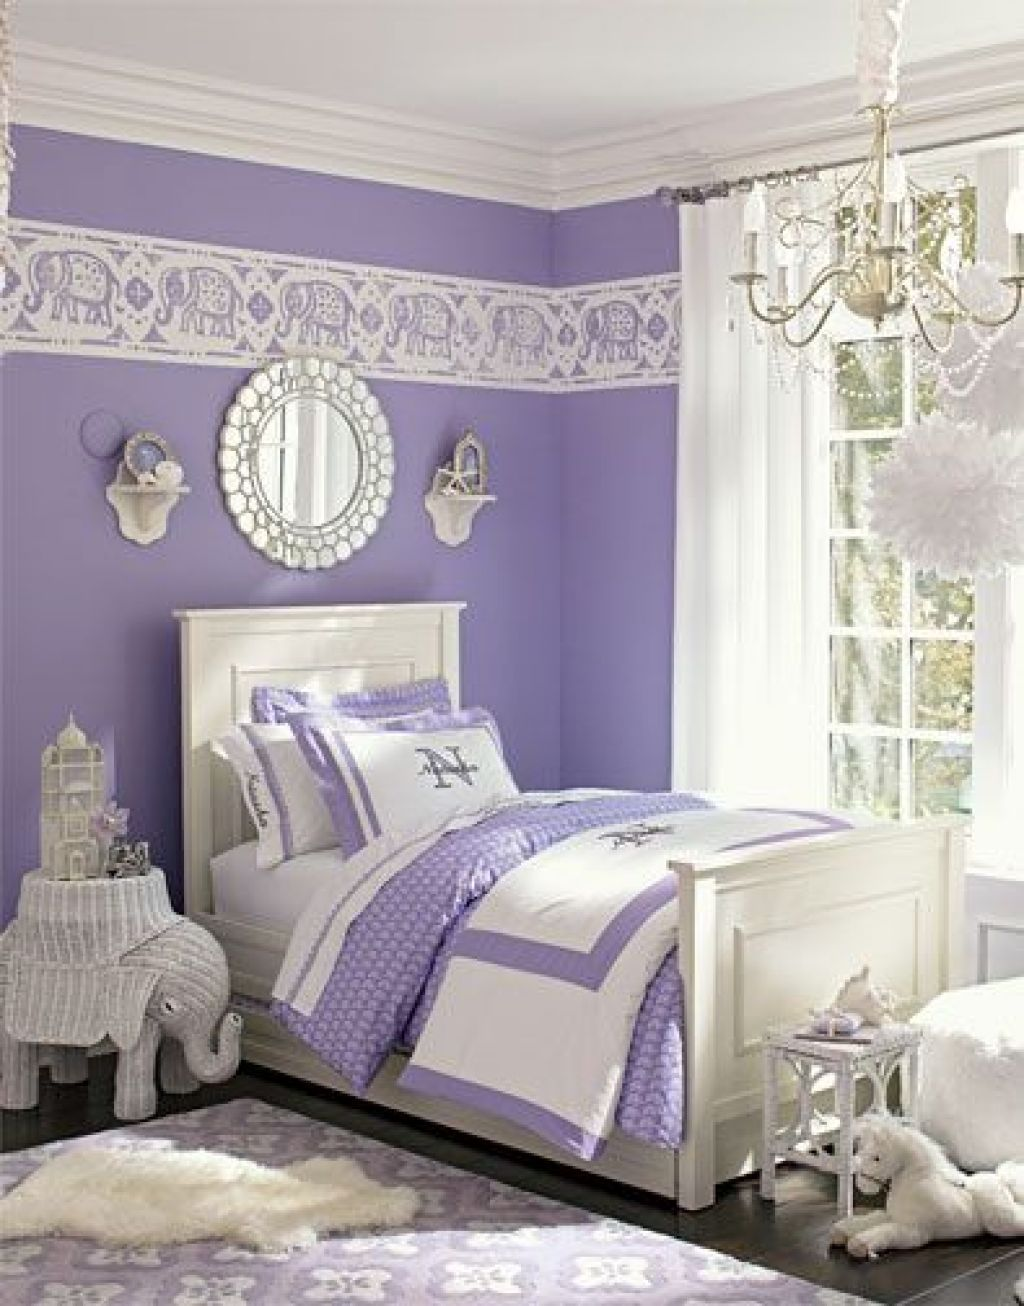 Bedroom ideas for girls purple - Bedroom Girl Purple Bedroom Ideas Teenage Girl Bedroom Ideas With Purple Color Wall And